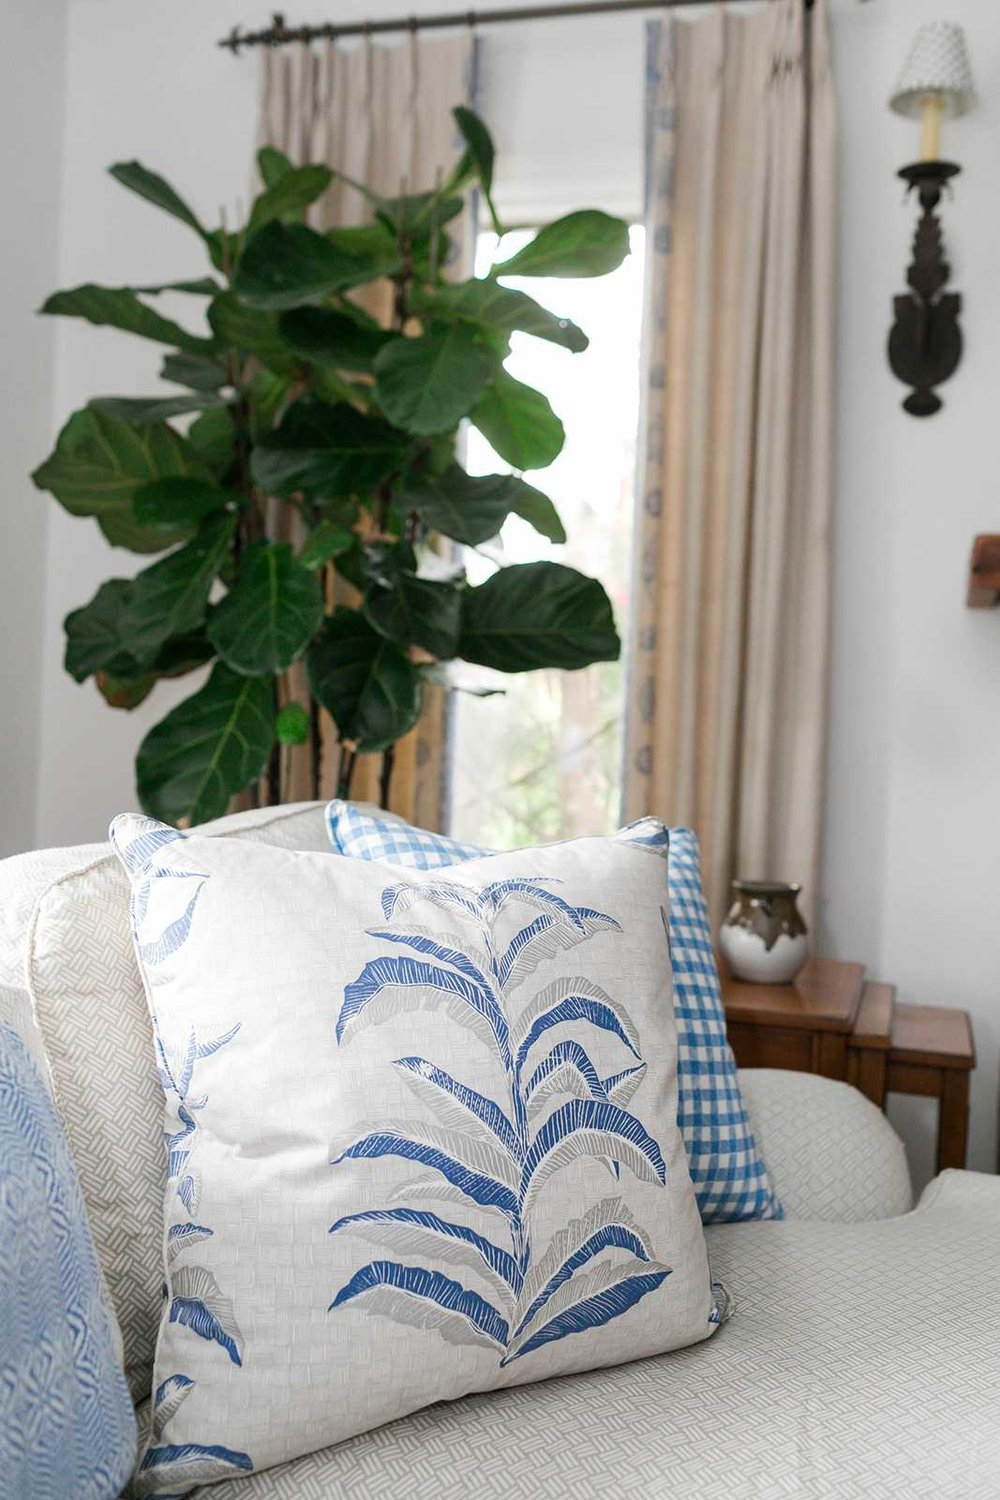 Banana Leaf Pillow in Navy, Interiors by Sharon Lee, Photo by Mekina Saylor